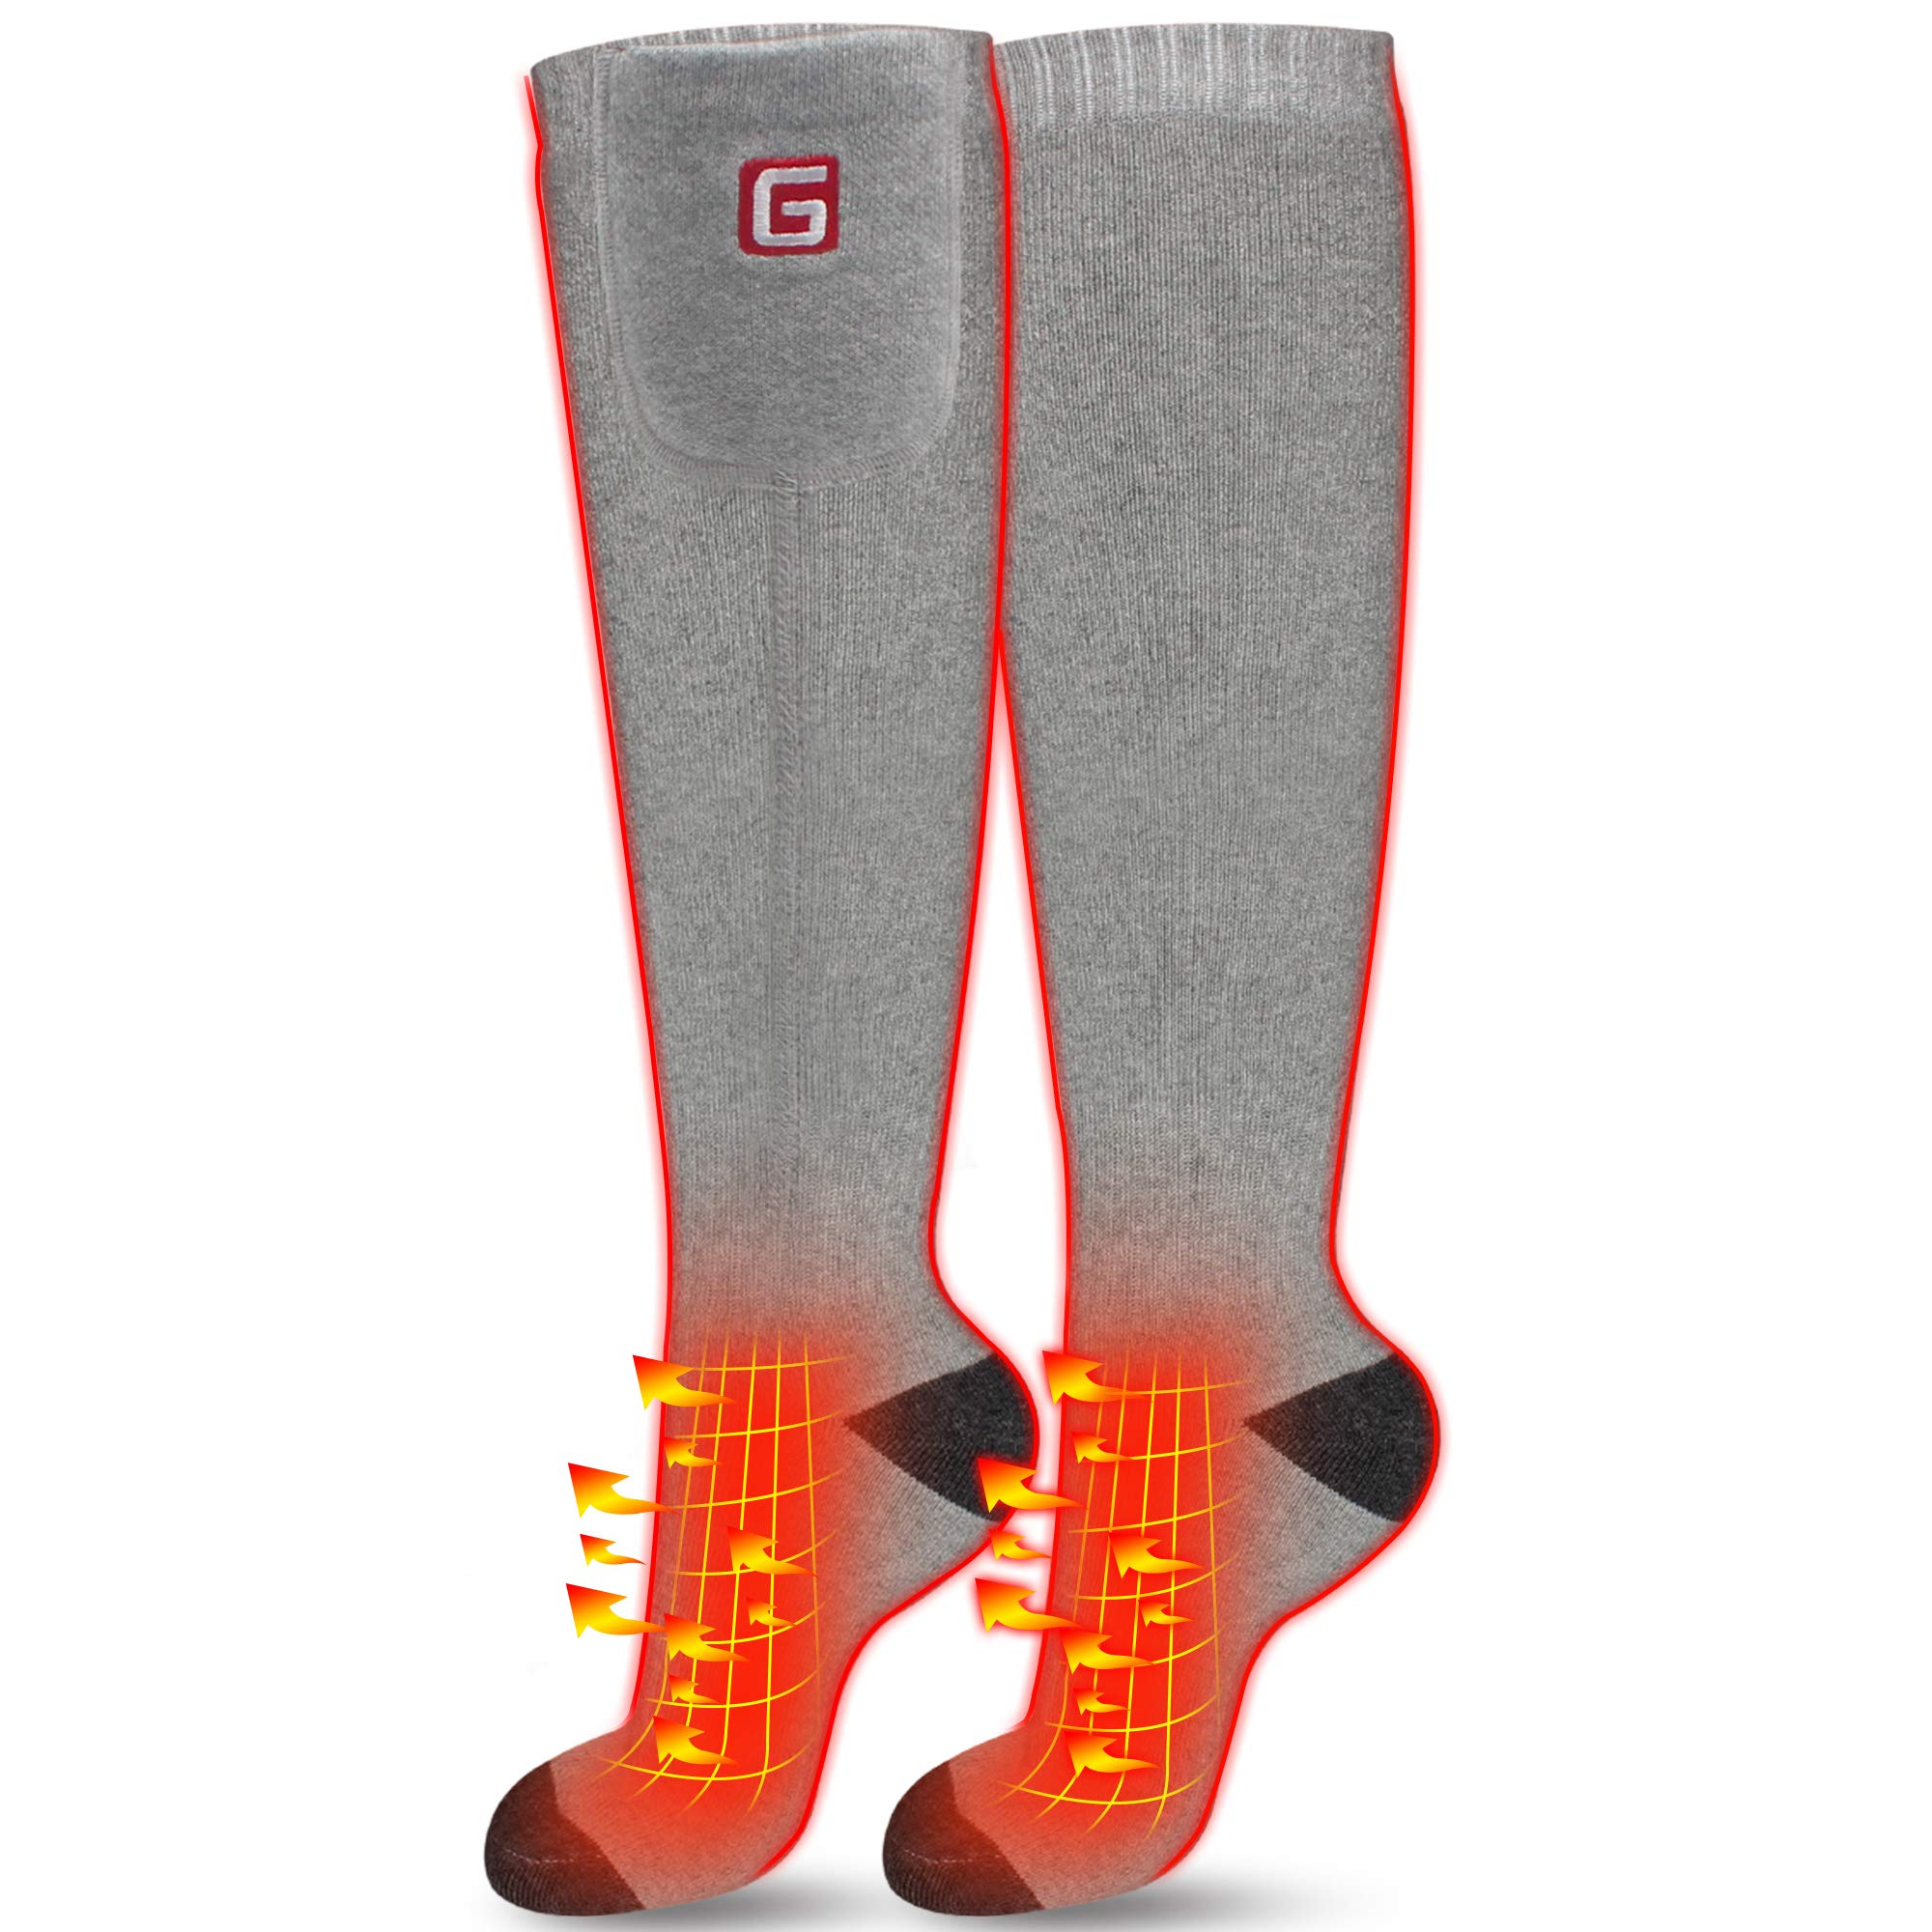 IFWATER Electric Heated Socks for Women Men, Rechargeable Electric Socks Battery Heated Socks Foot Warmer for Chronically Cold Foot, Great for Skiing Hiking Motorcycling Warm Winter Socks(Gray-L) by IFWATER